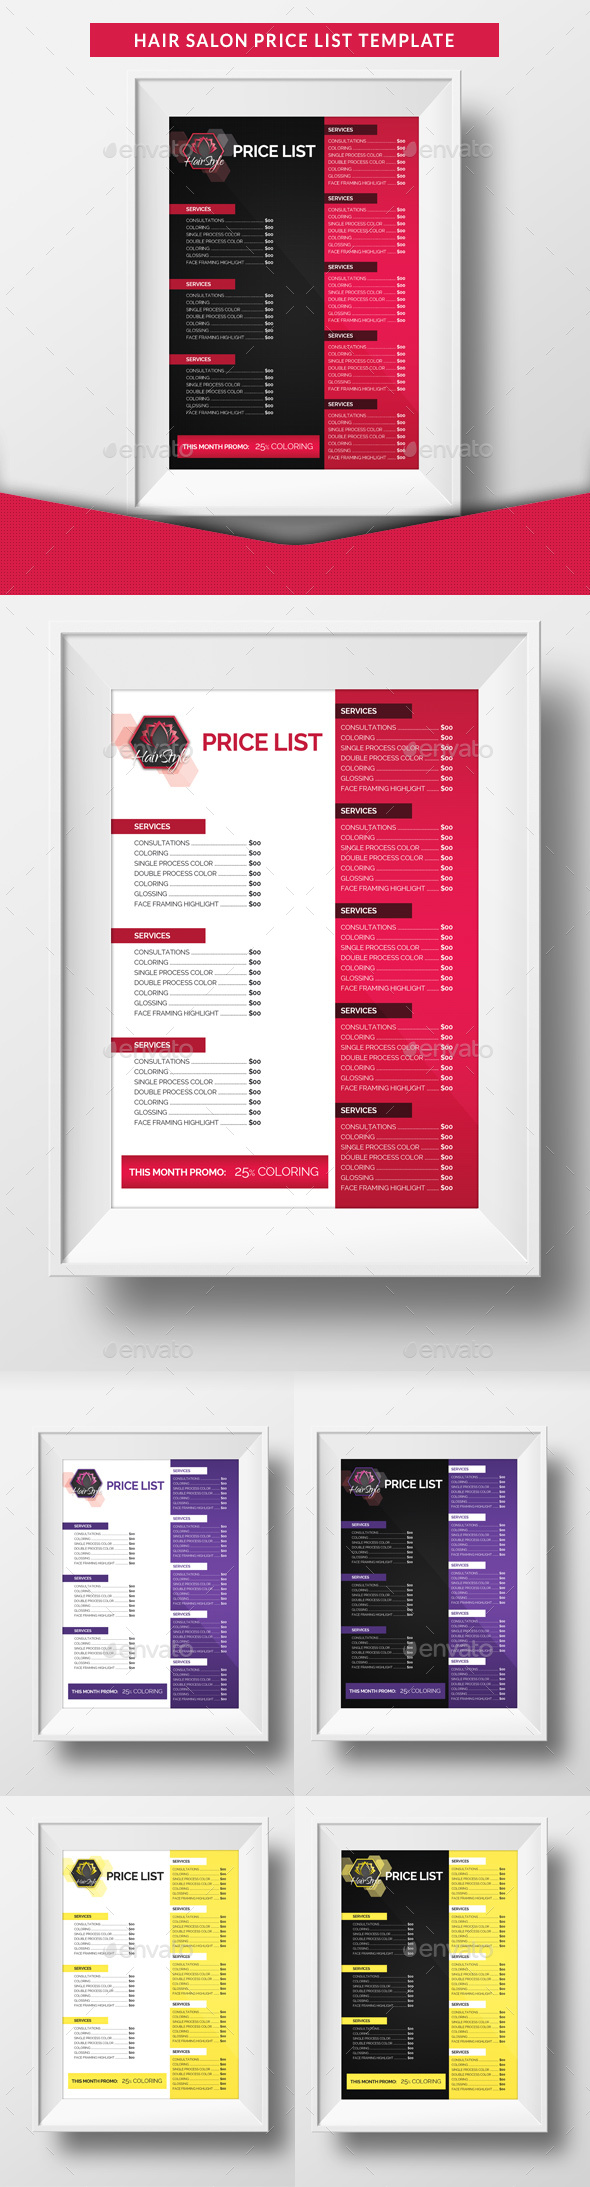 Hair Salon Price List Template   Miscellaneous Print Templates